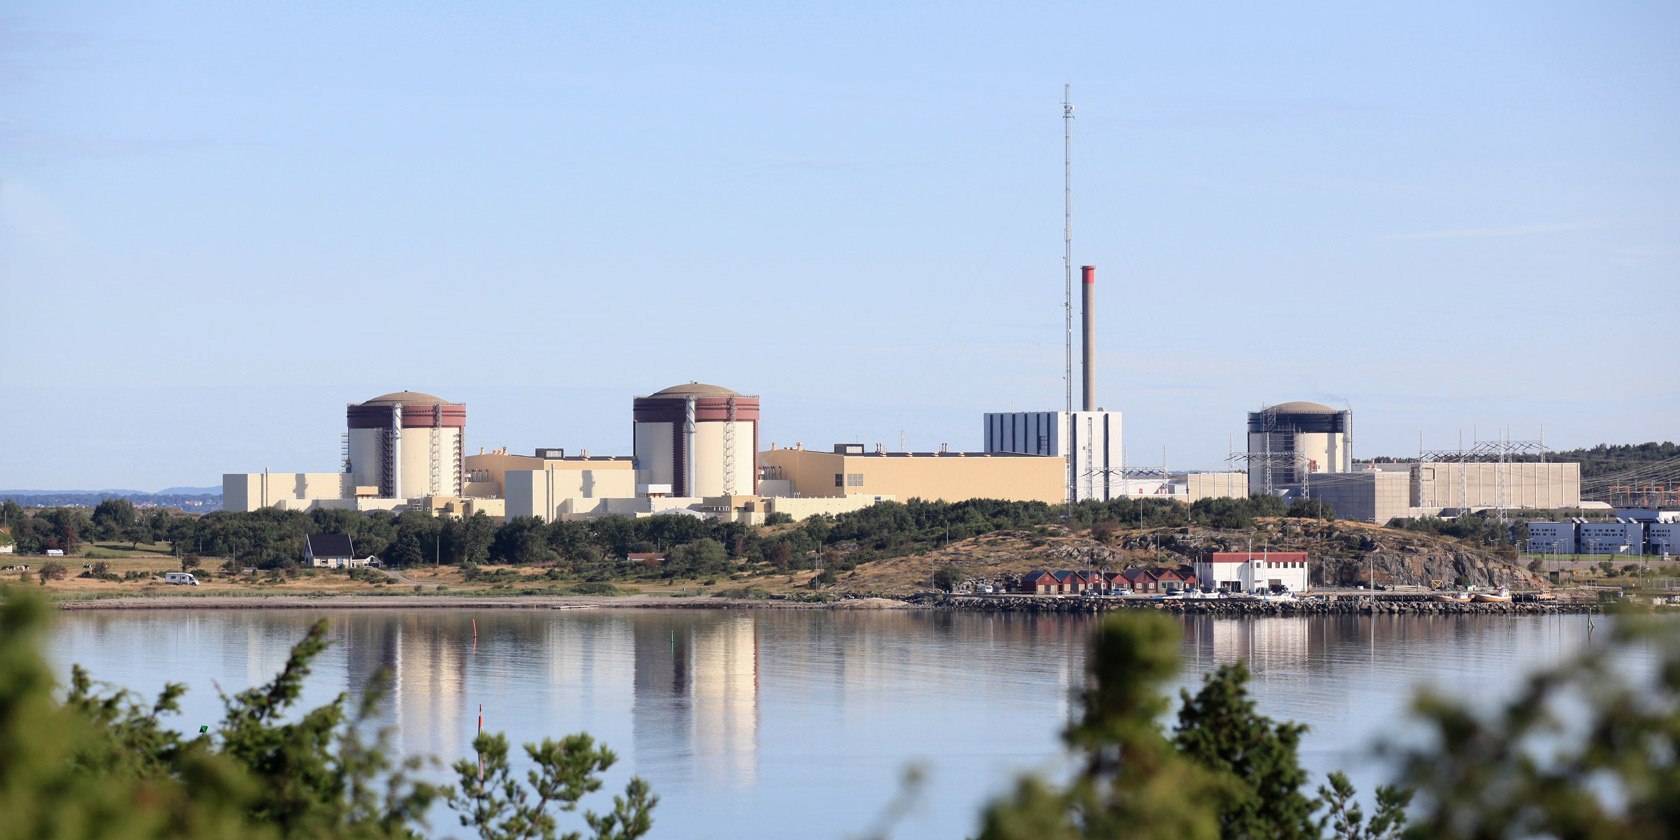 View of Ringhals nuclear power plant